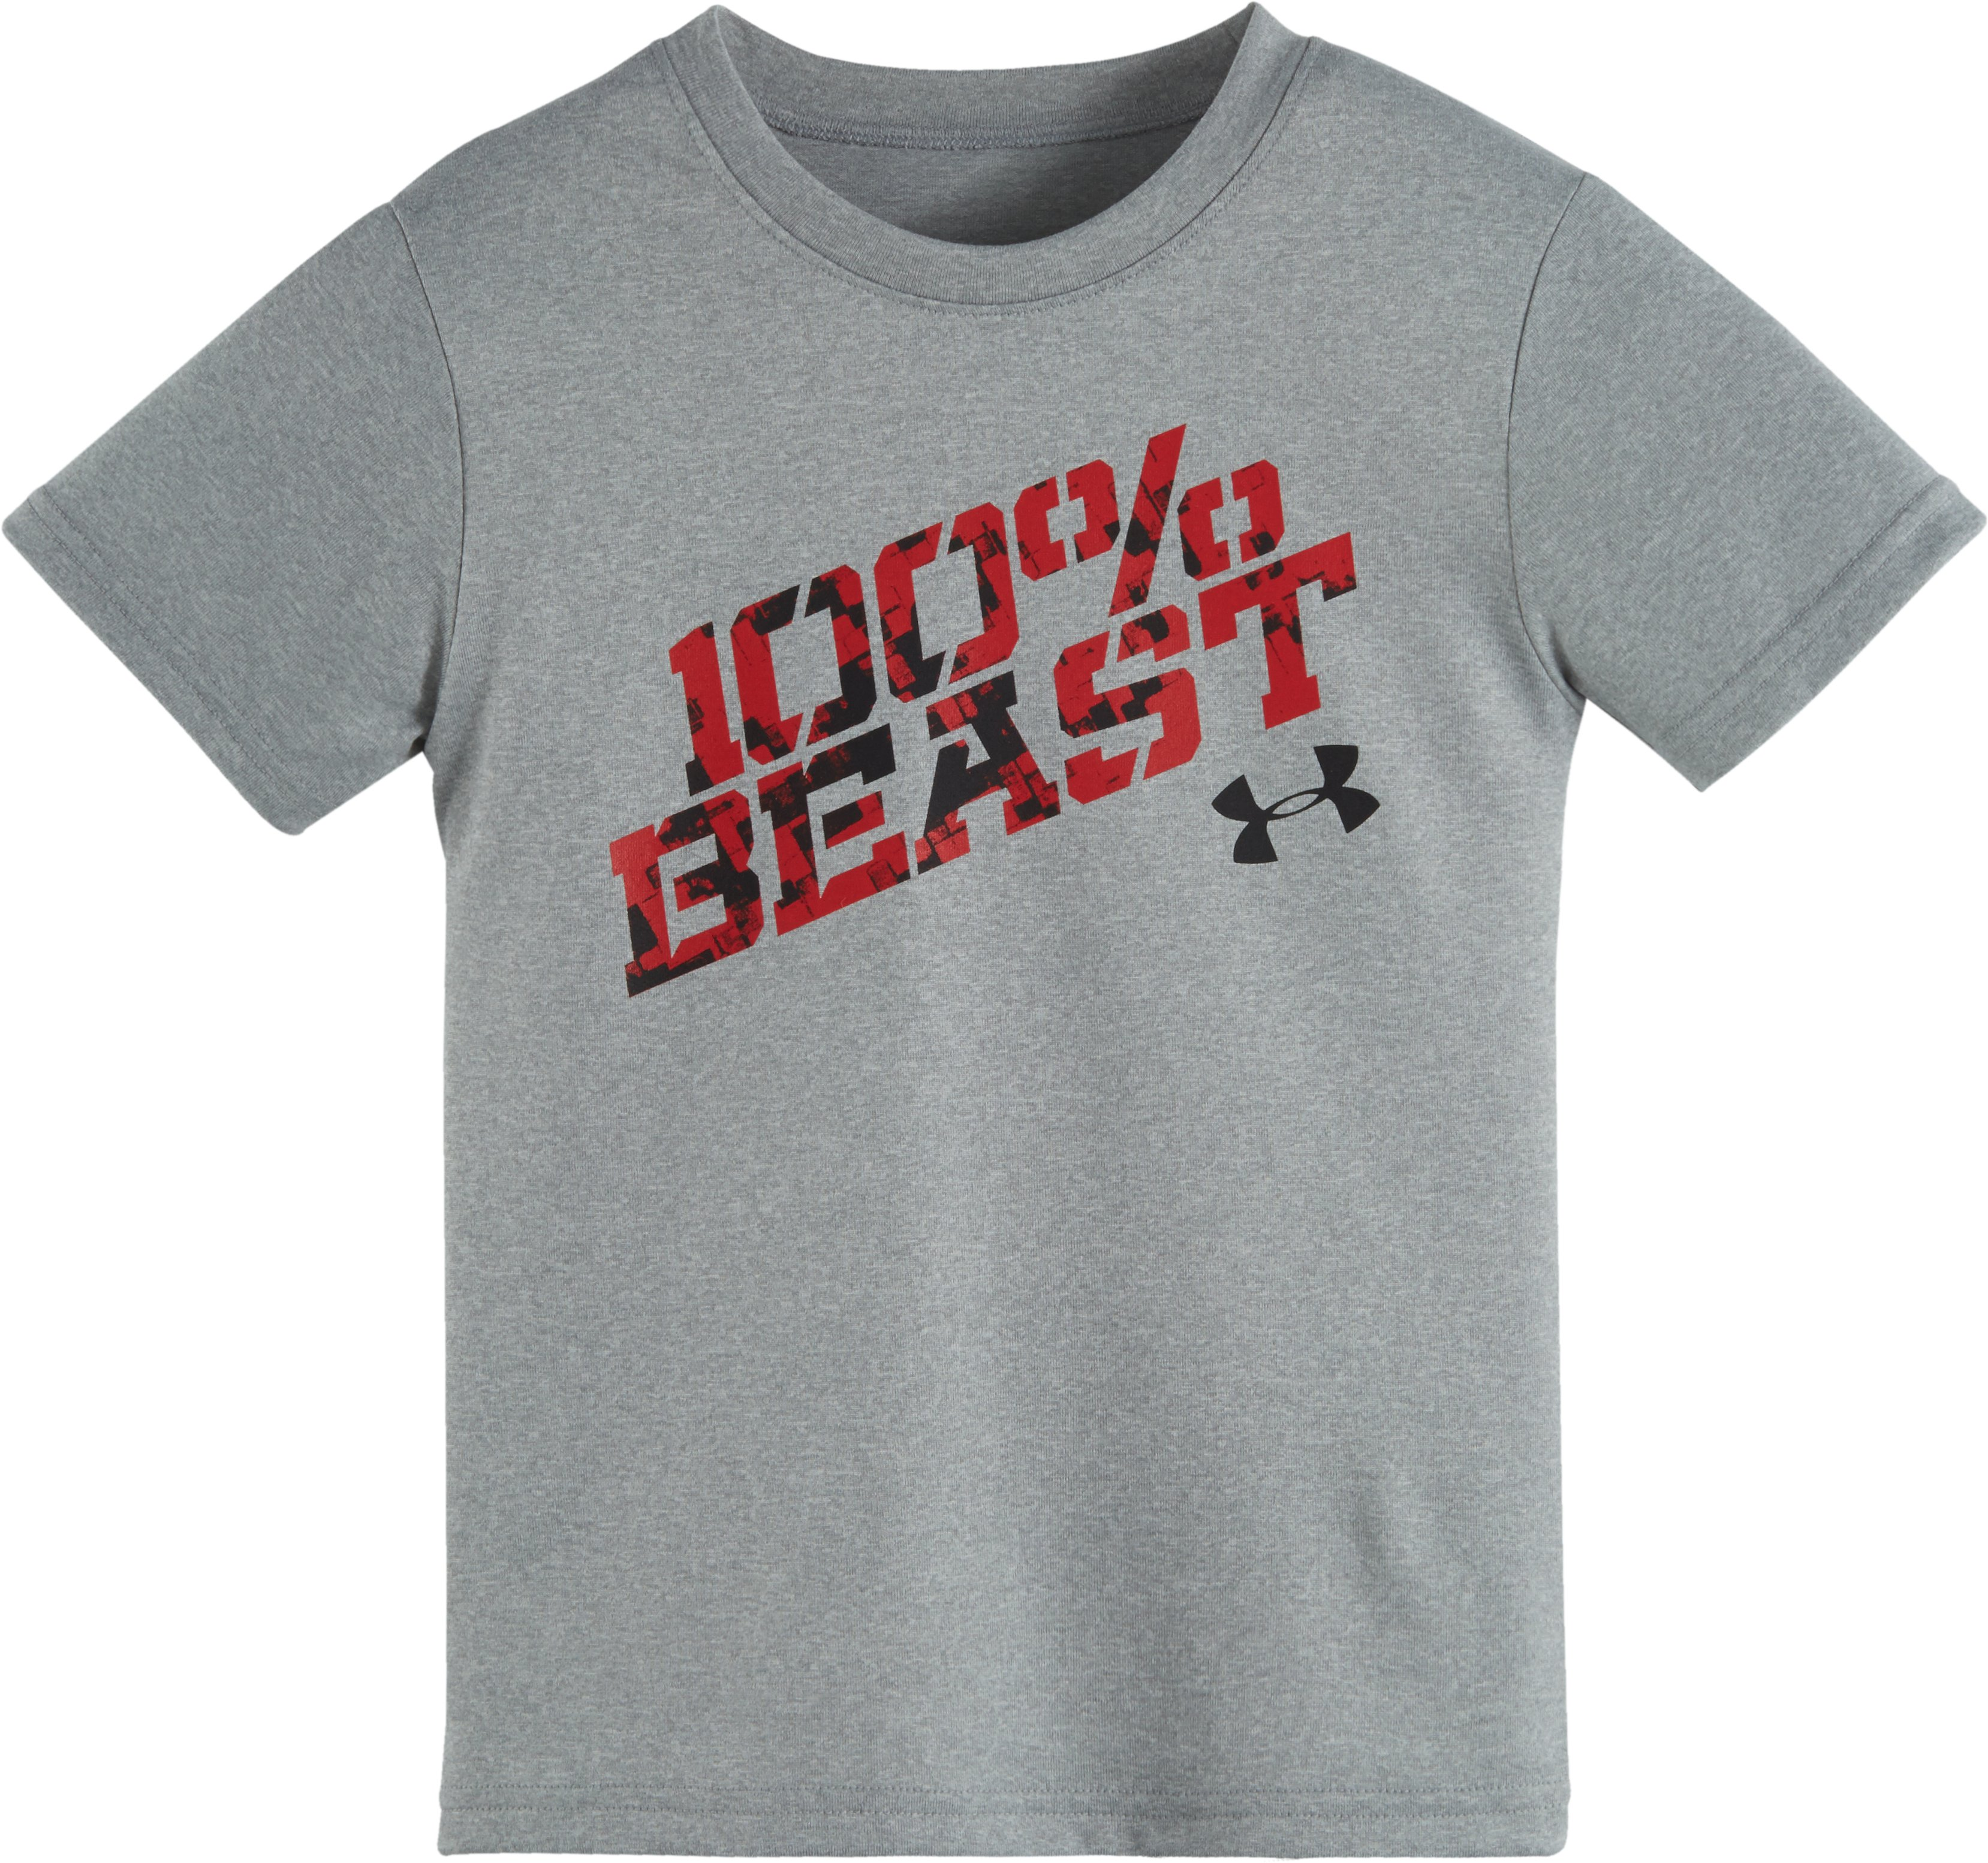 Boys' Toddler UA 100% Beast Short Sleeve T-Shirt, True Gray Heather, Laydown